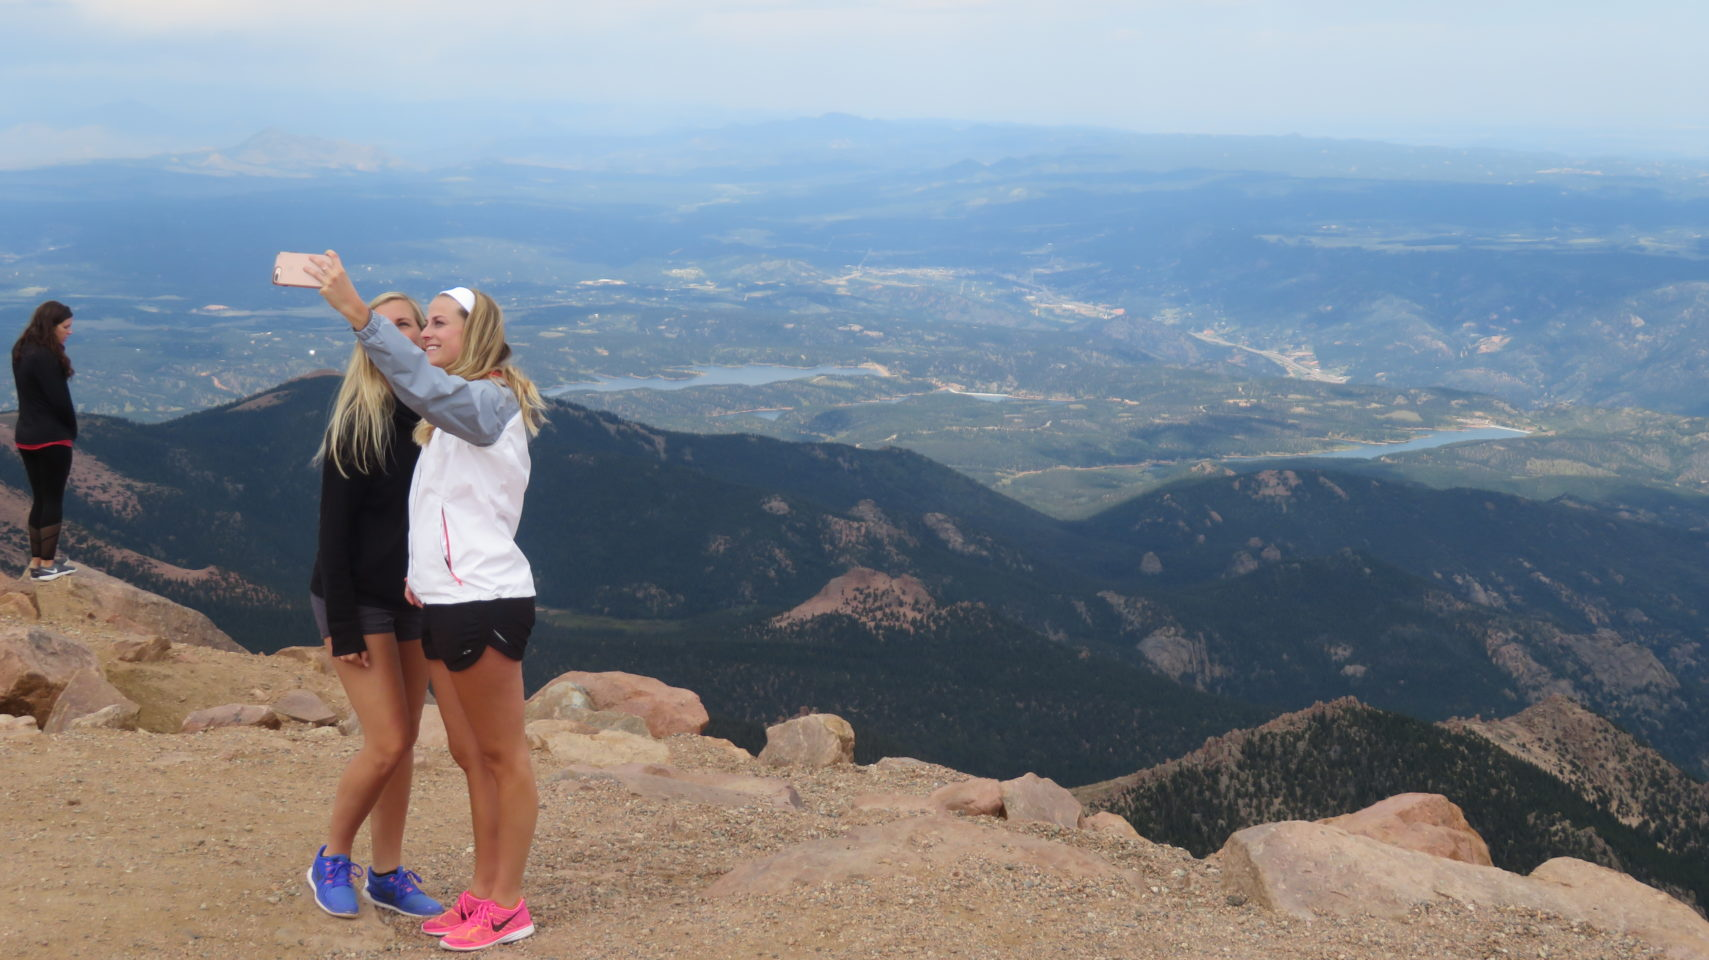 Time for a selfie from the top of Pikes Peak mountain !